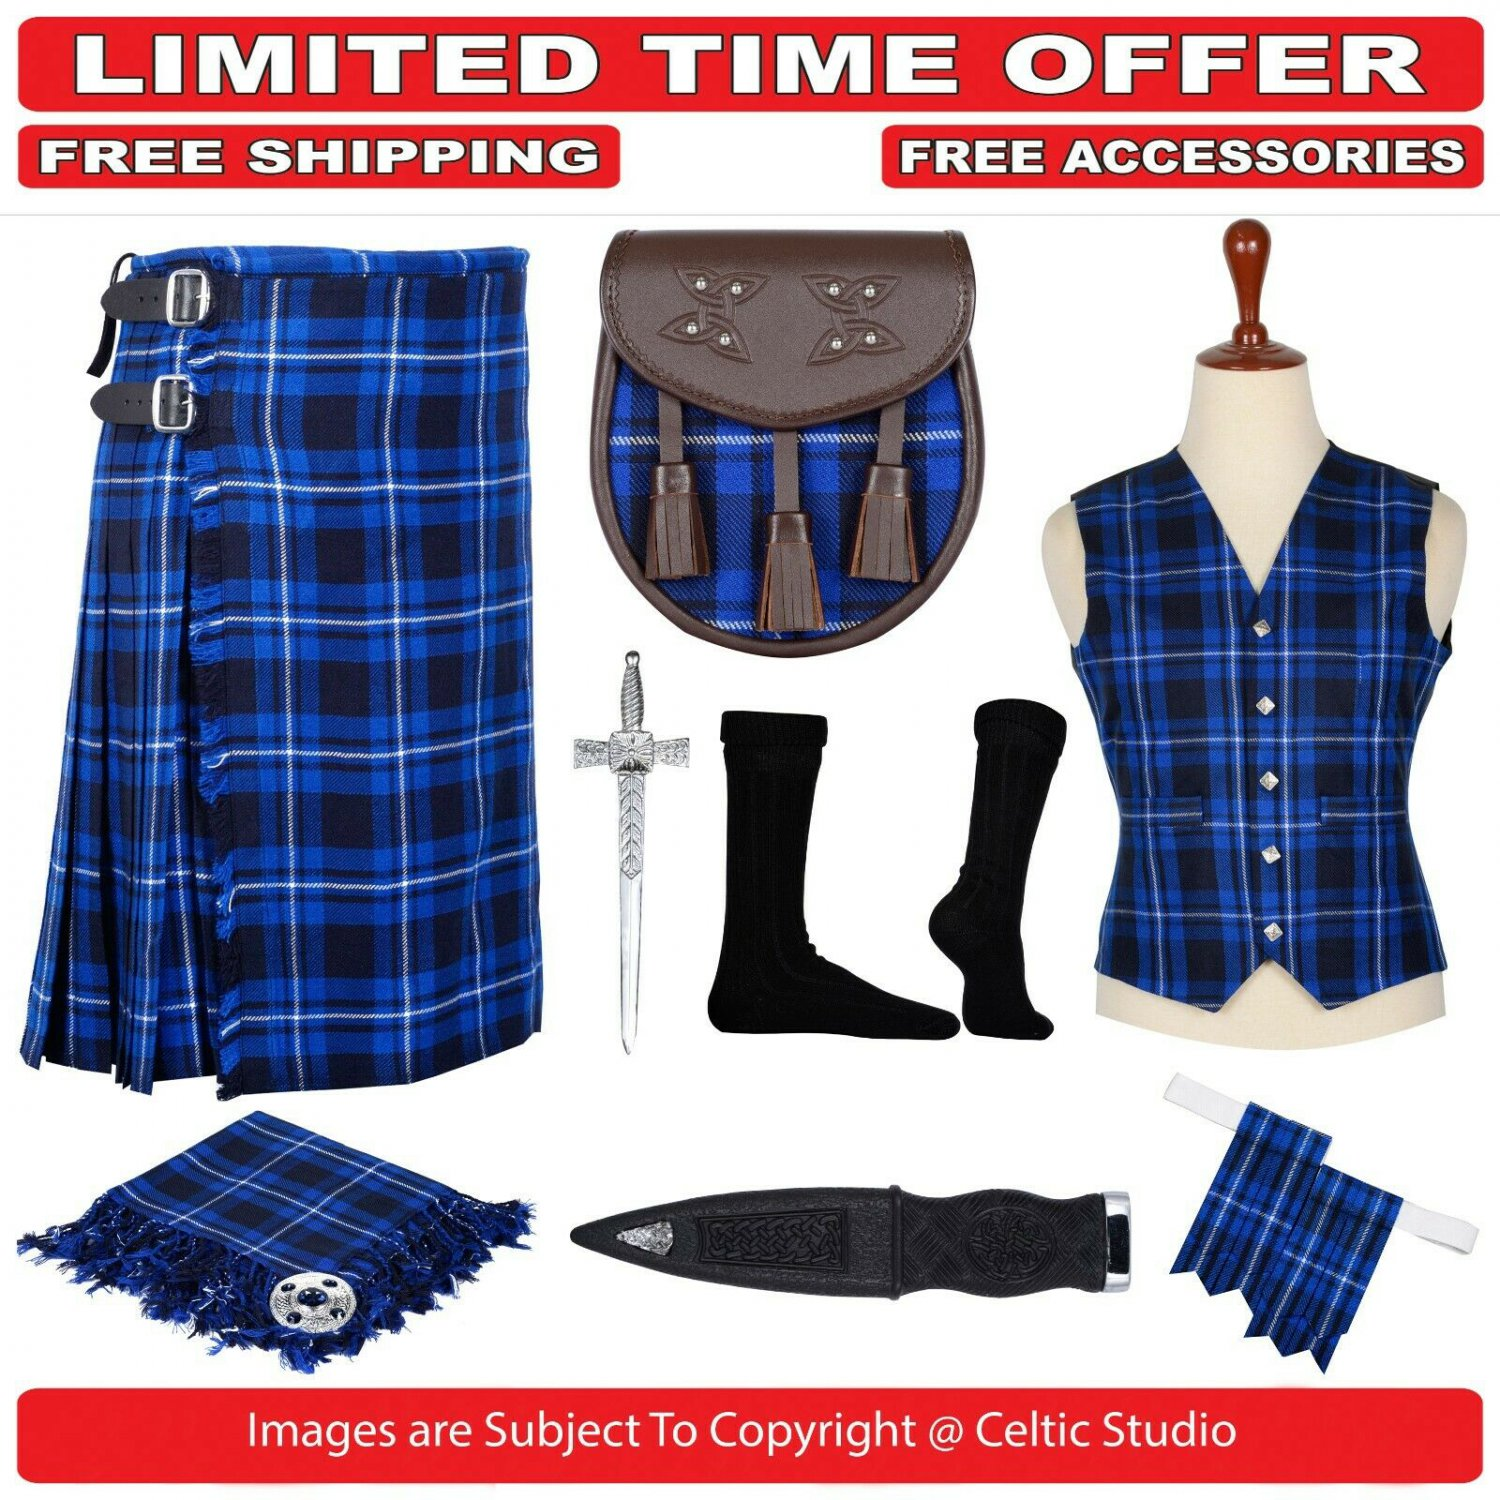 58 size Ramsey Blue Scottish Traditional Tartan Kilt With Free Shipping and 9 Accessories